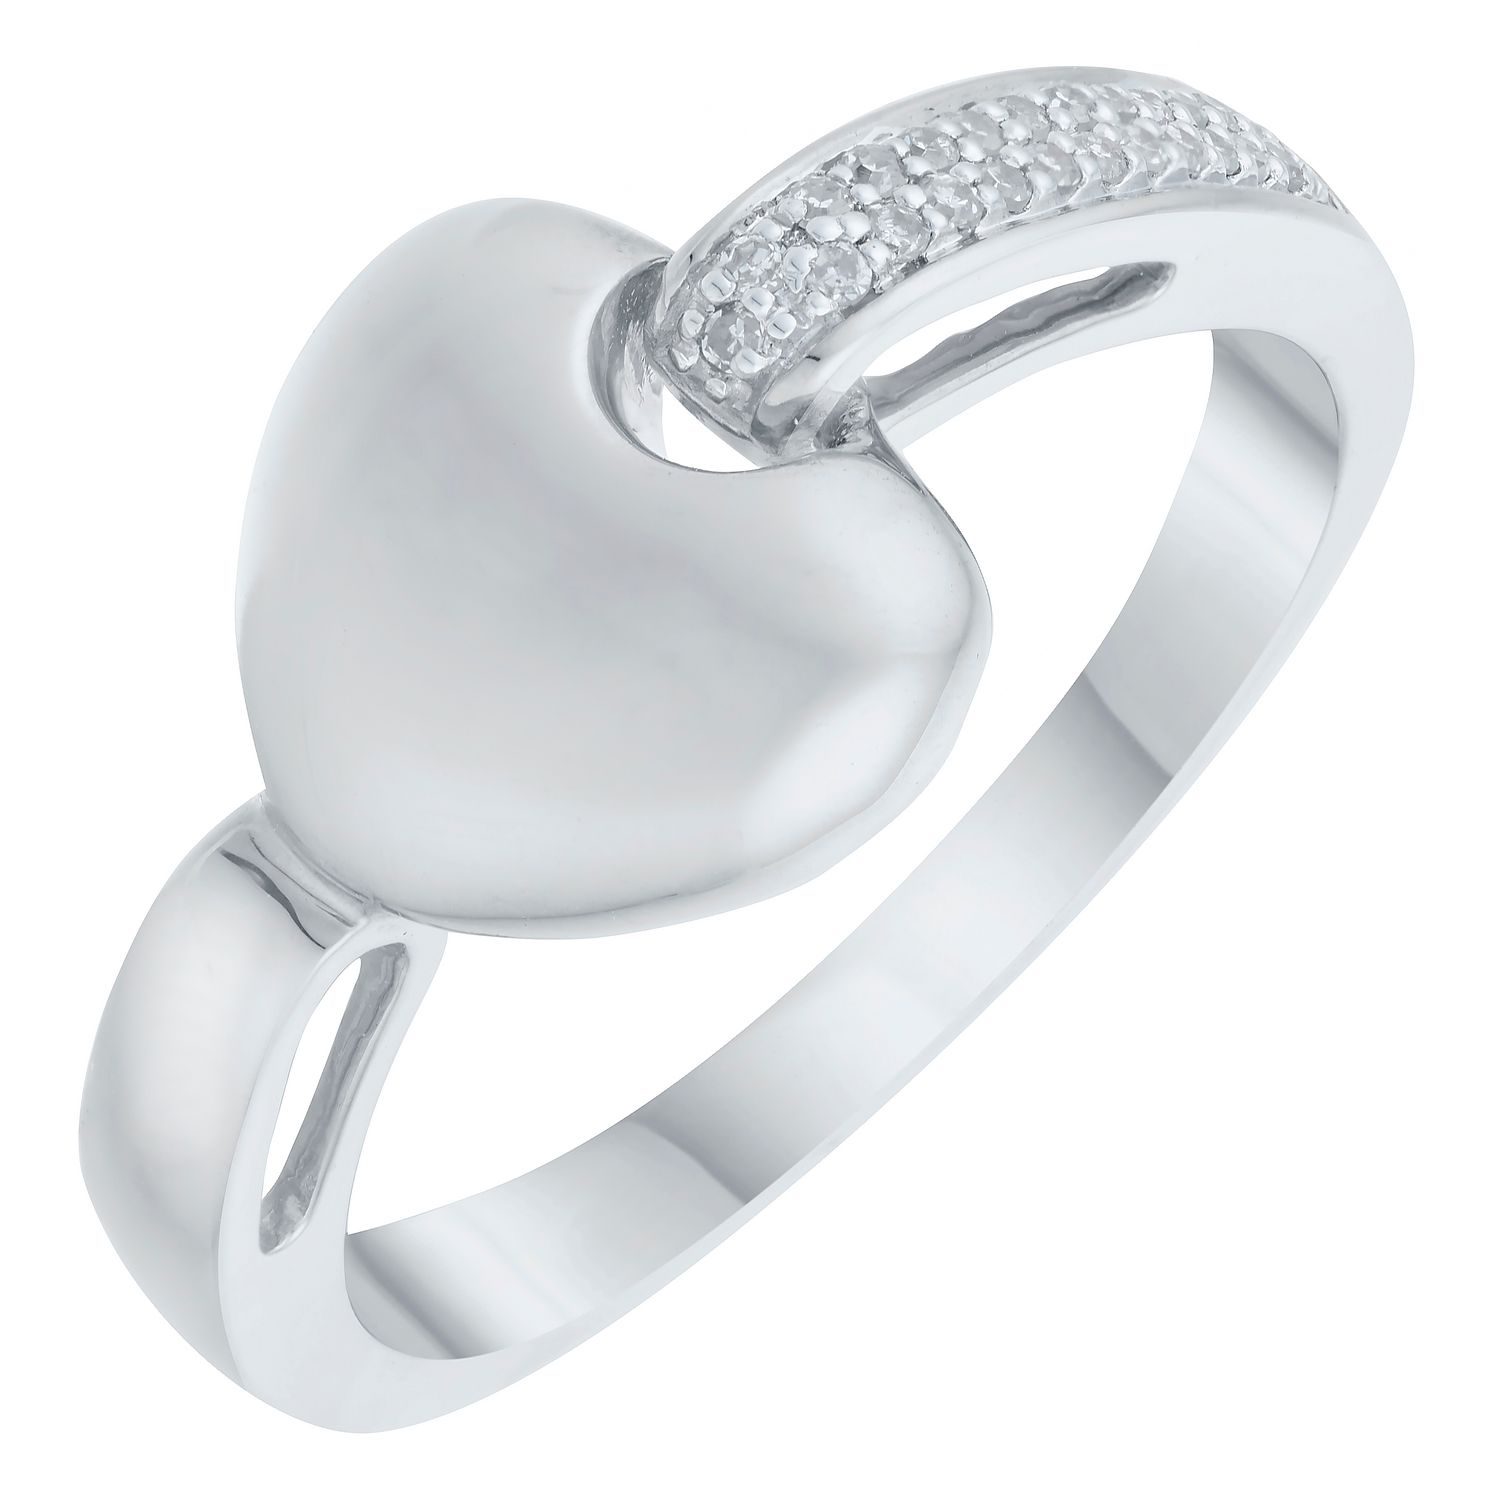 9ct White Gold Diamond Everlasting Heart Ring - Product number 8129770